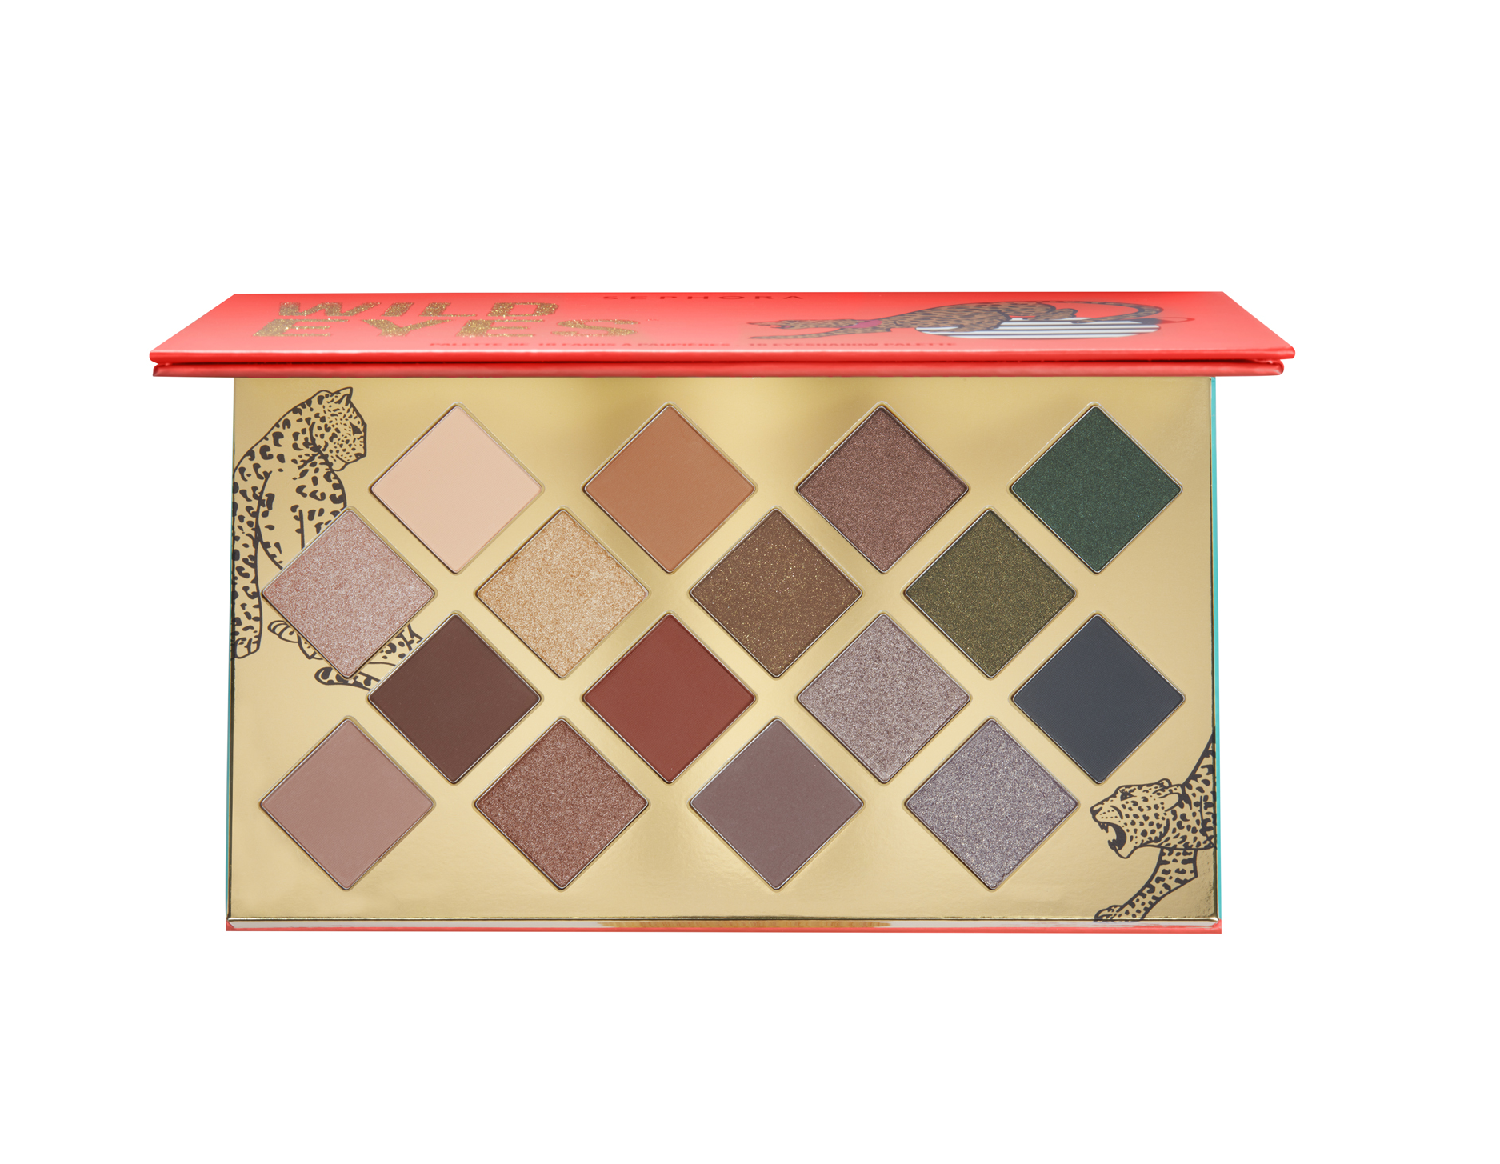 16 EYESHADOW PALETTE